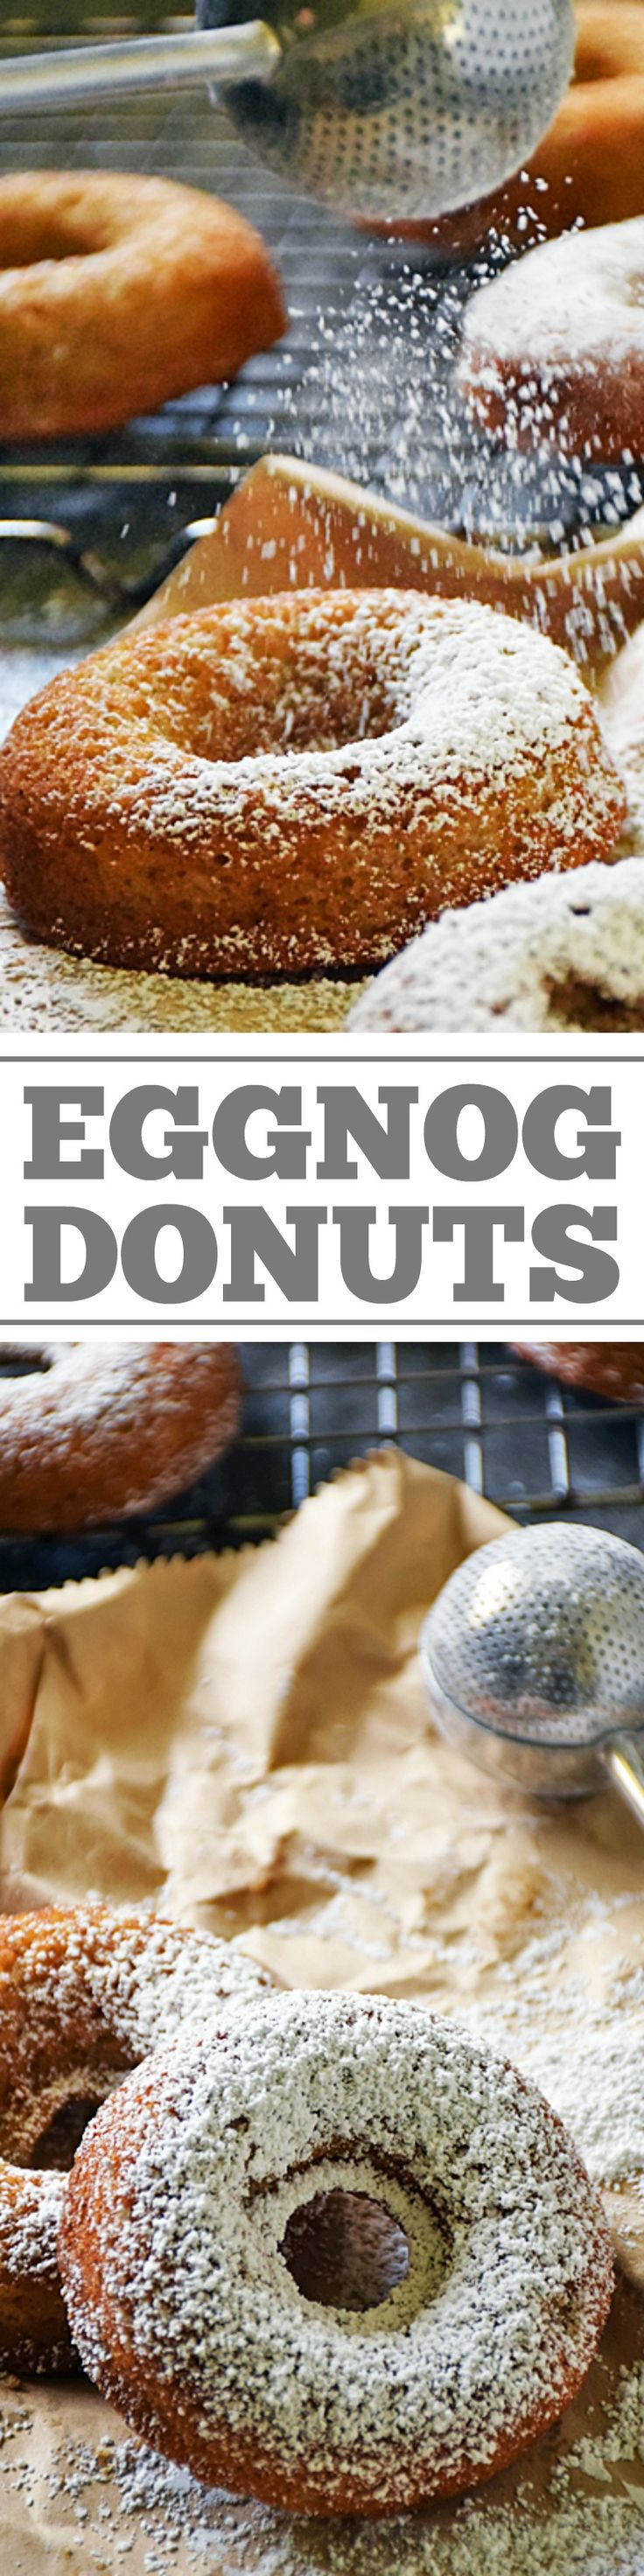 Celebrate the season with freshly Baked Eggnog Donuts! Rich, creamy, sweet eggnog is baked right into these donuts making them the perfect breakfast treat for Christmas morning and to serve at parties this holiday season. Perfect for breakfast, brunch, and even for a party appetizer! An easy recipe everyone wil love! #LTGrecipes